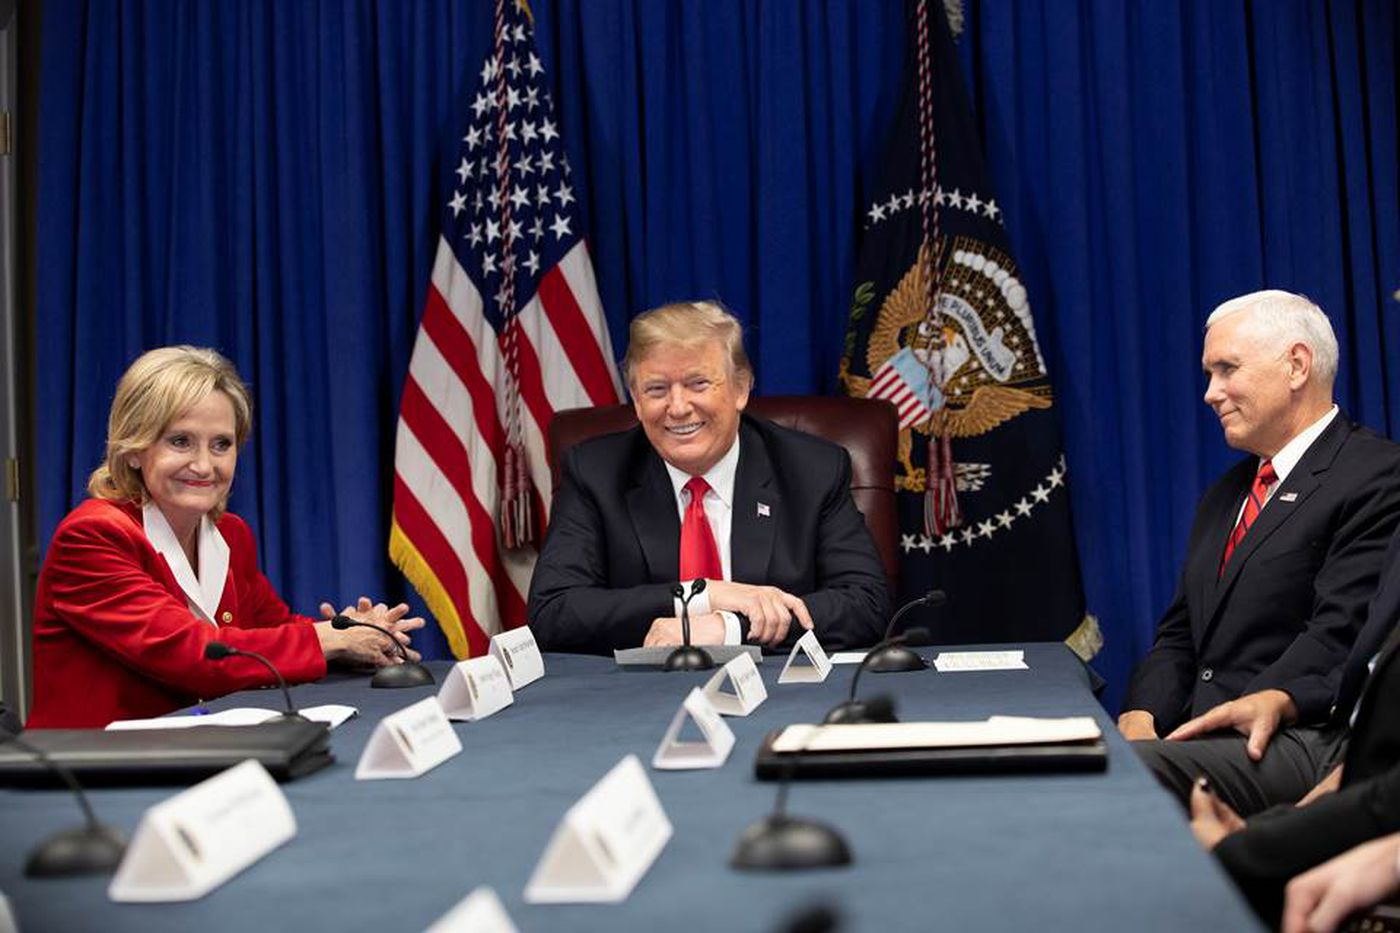 President Donald J. Trump, joined by Vice President Mike Pence and U.S. Senator Cindy Hyde-Smith, R-Miss., participates in the First Step Roundtable with Mississippi Gov. Phil Bryan and law enforcement leaders Monday, Nov. 26, 2018, at the Mississippi Coast Coliseum in Biloxi, Miss. (Official White House Photo by D. Myles Cullen)